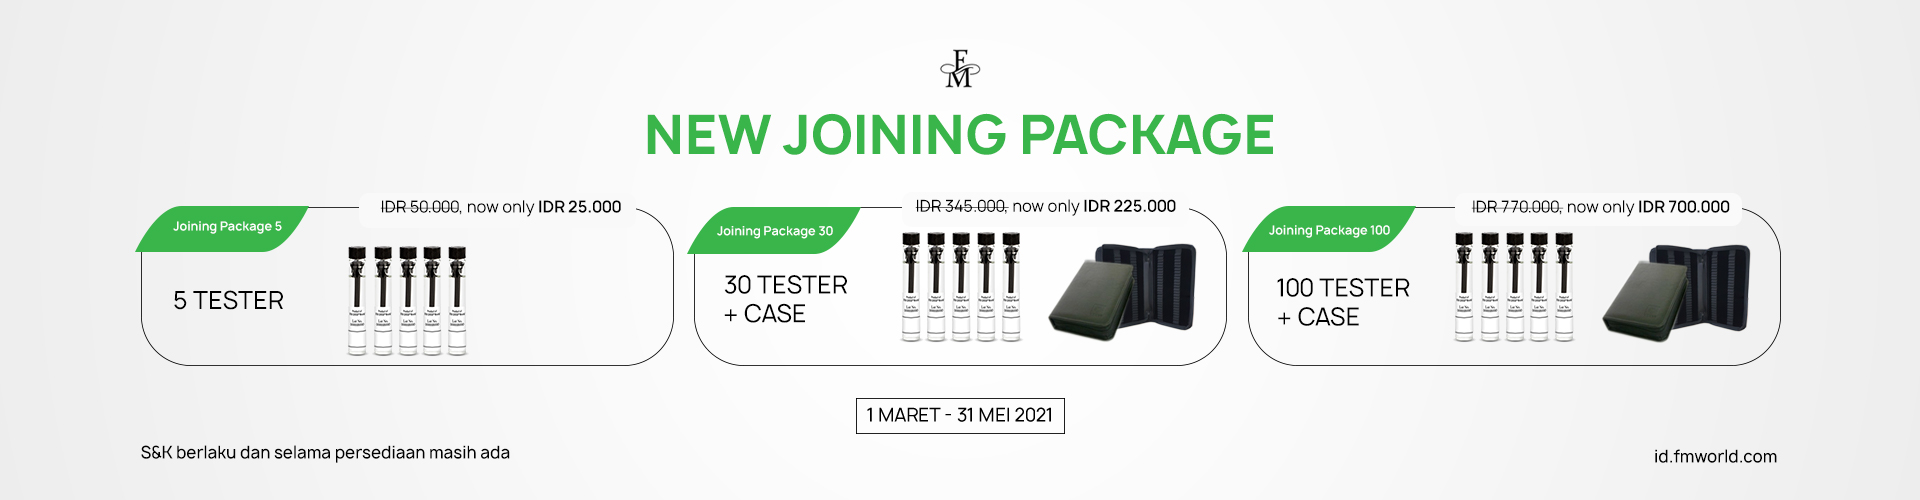 NEW JOINING PACKAGE